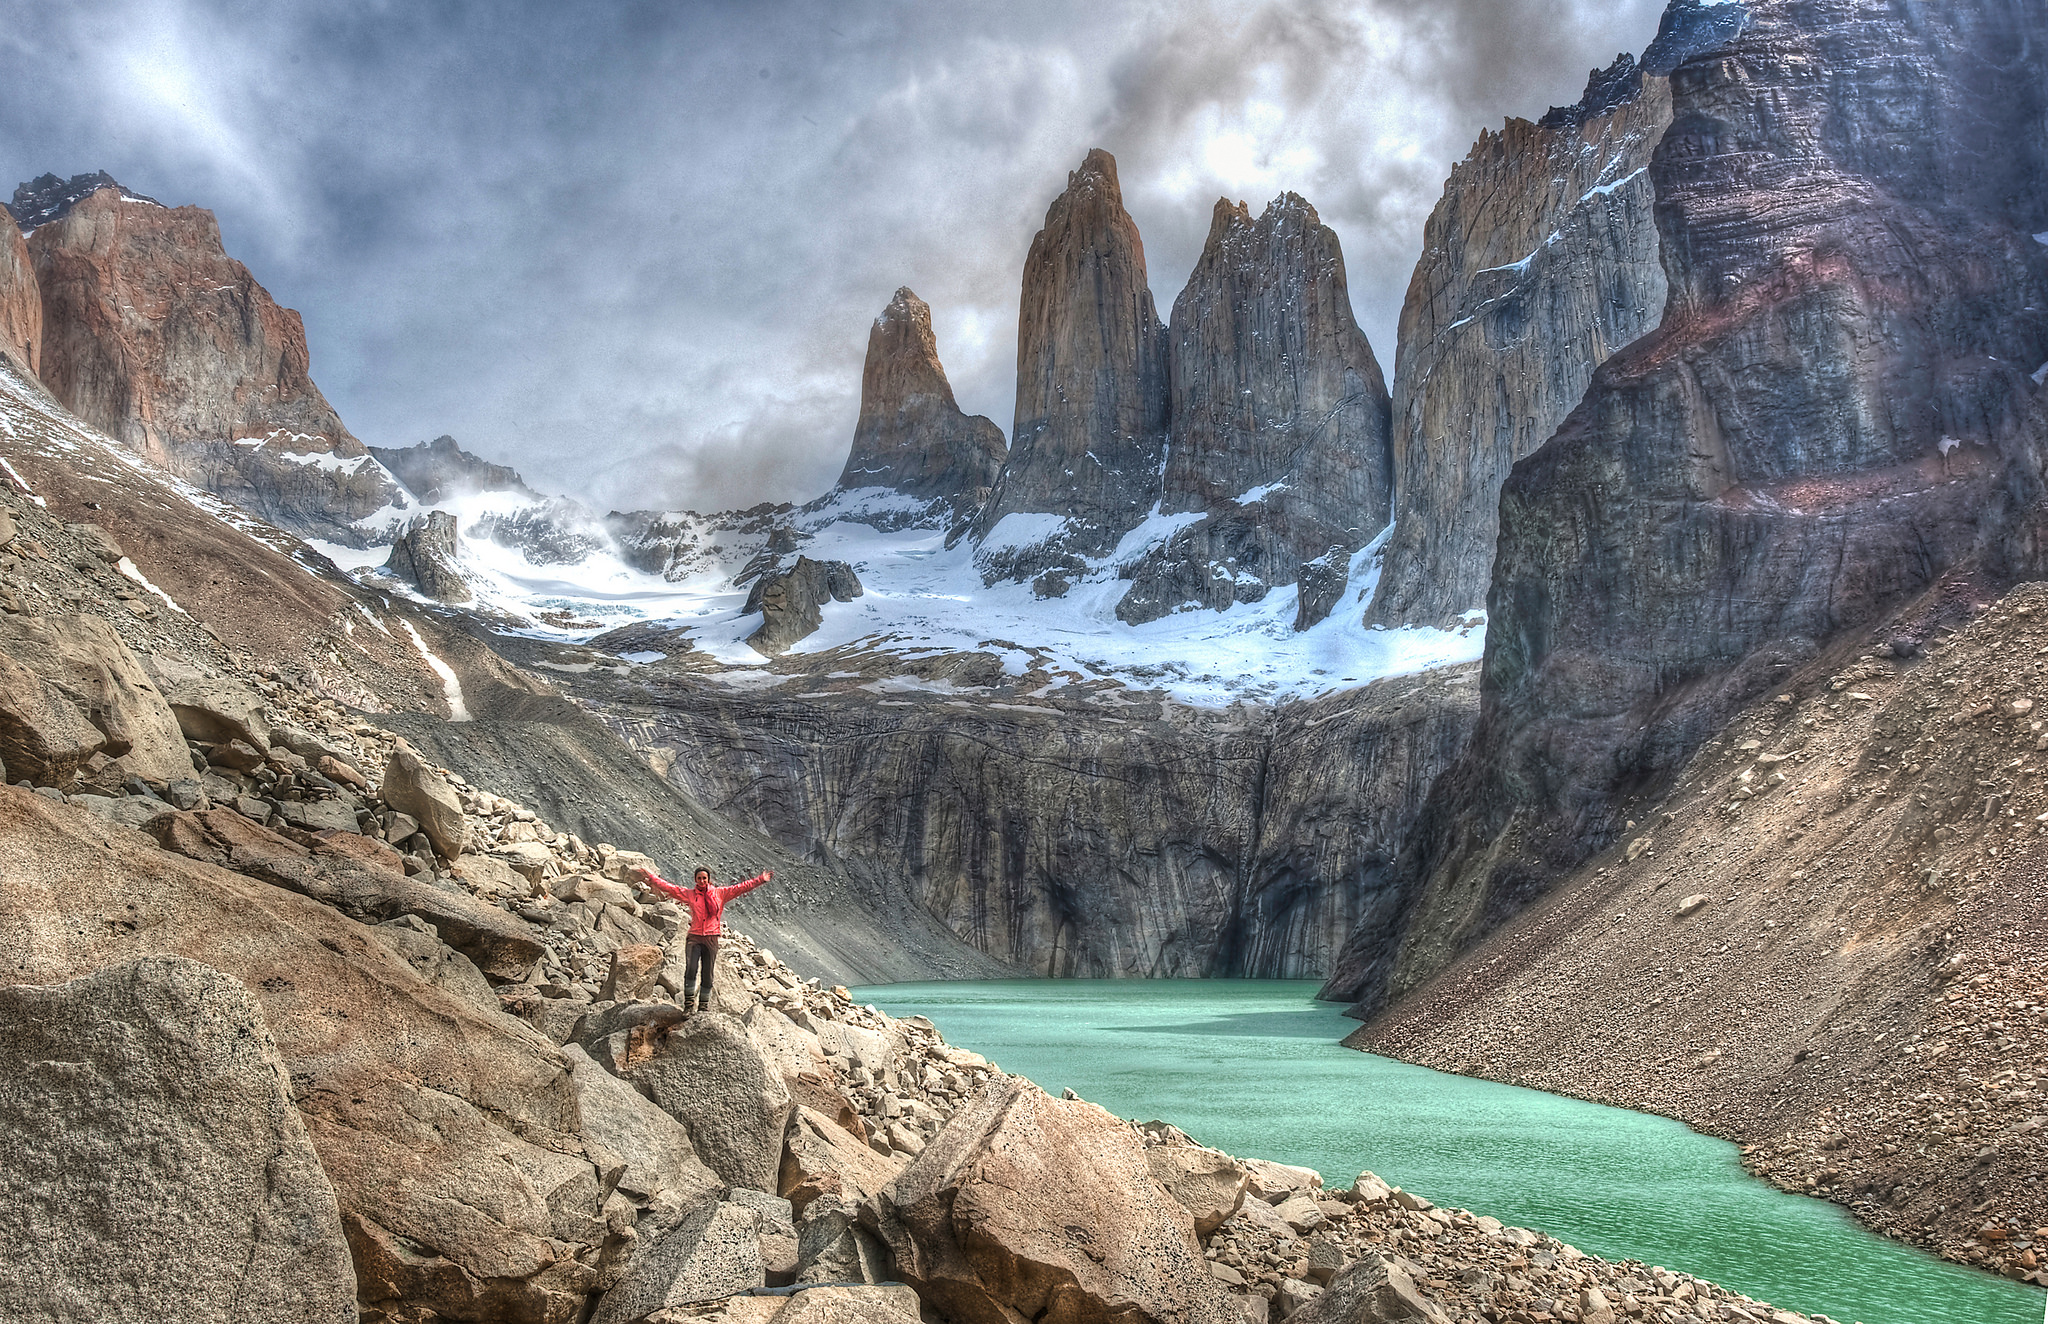 Riders on the storm, torres del paine, patagonia, ines papert.